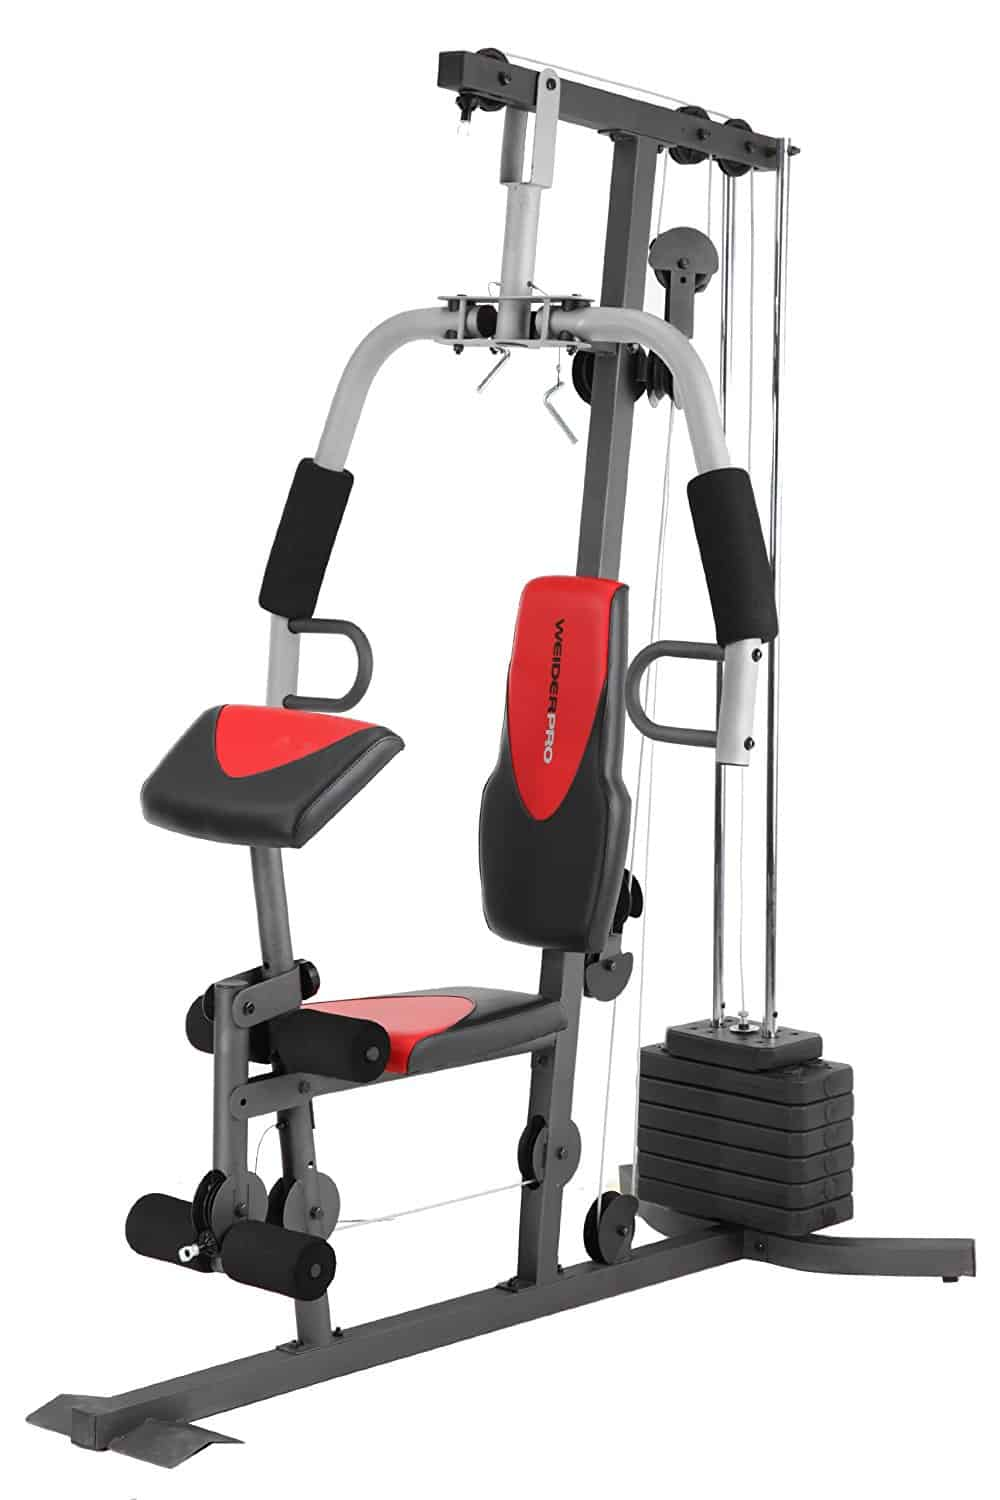 Weider home gym review-all in one workout - Peak Health Pro